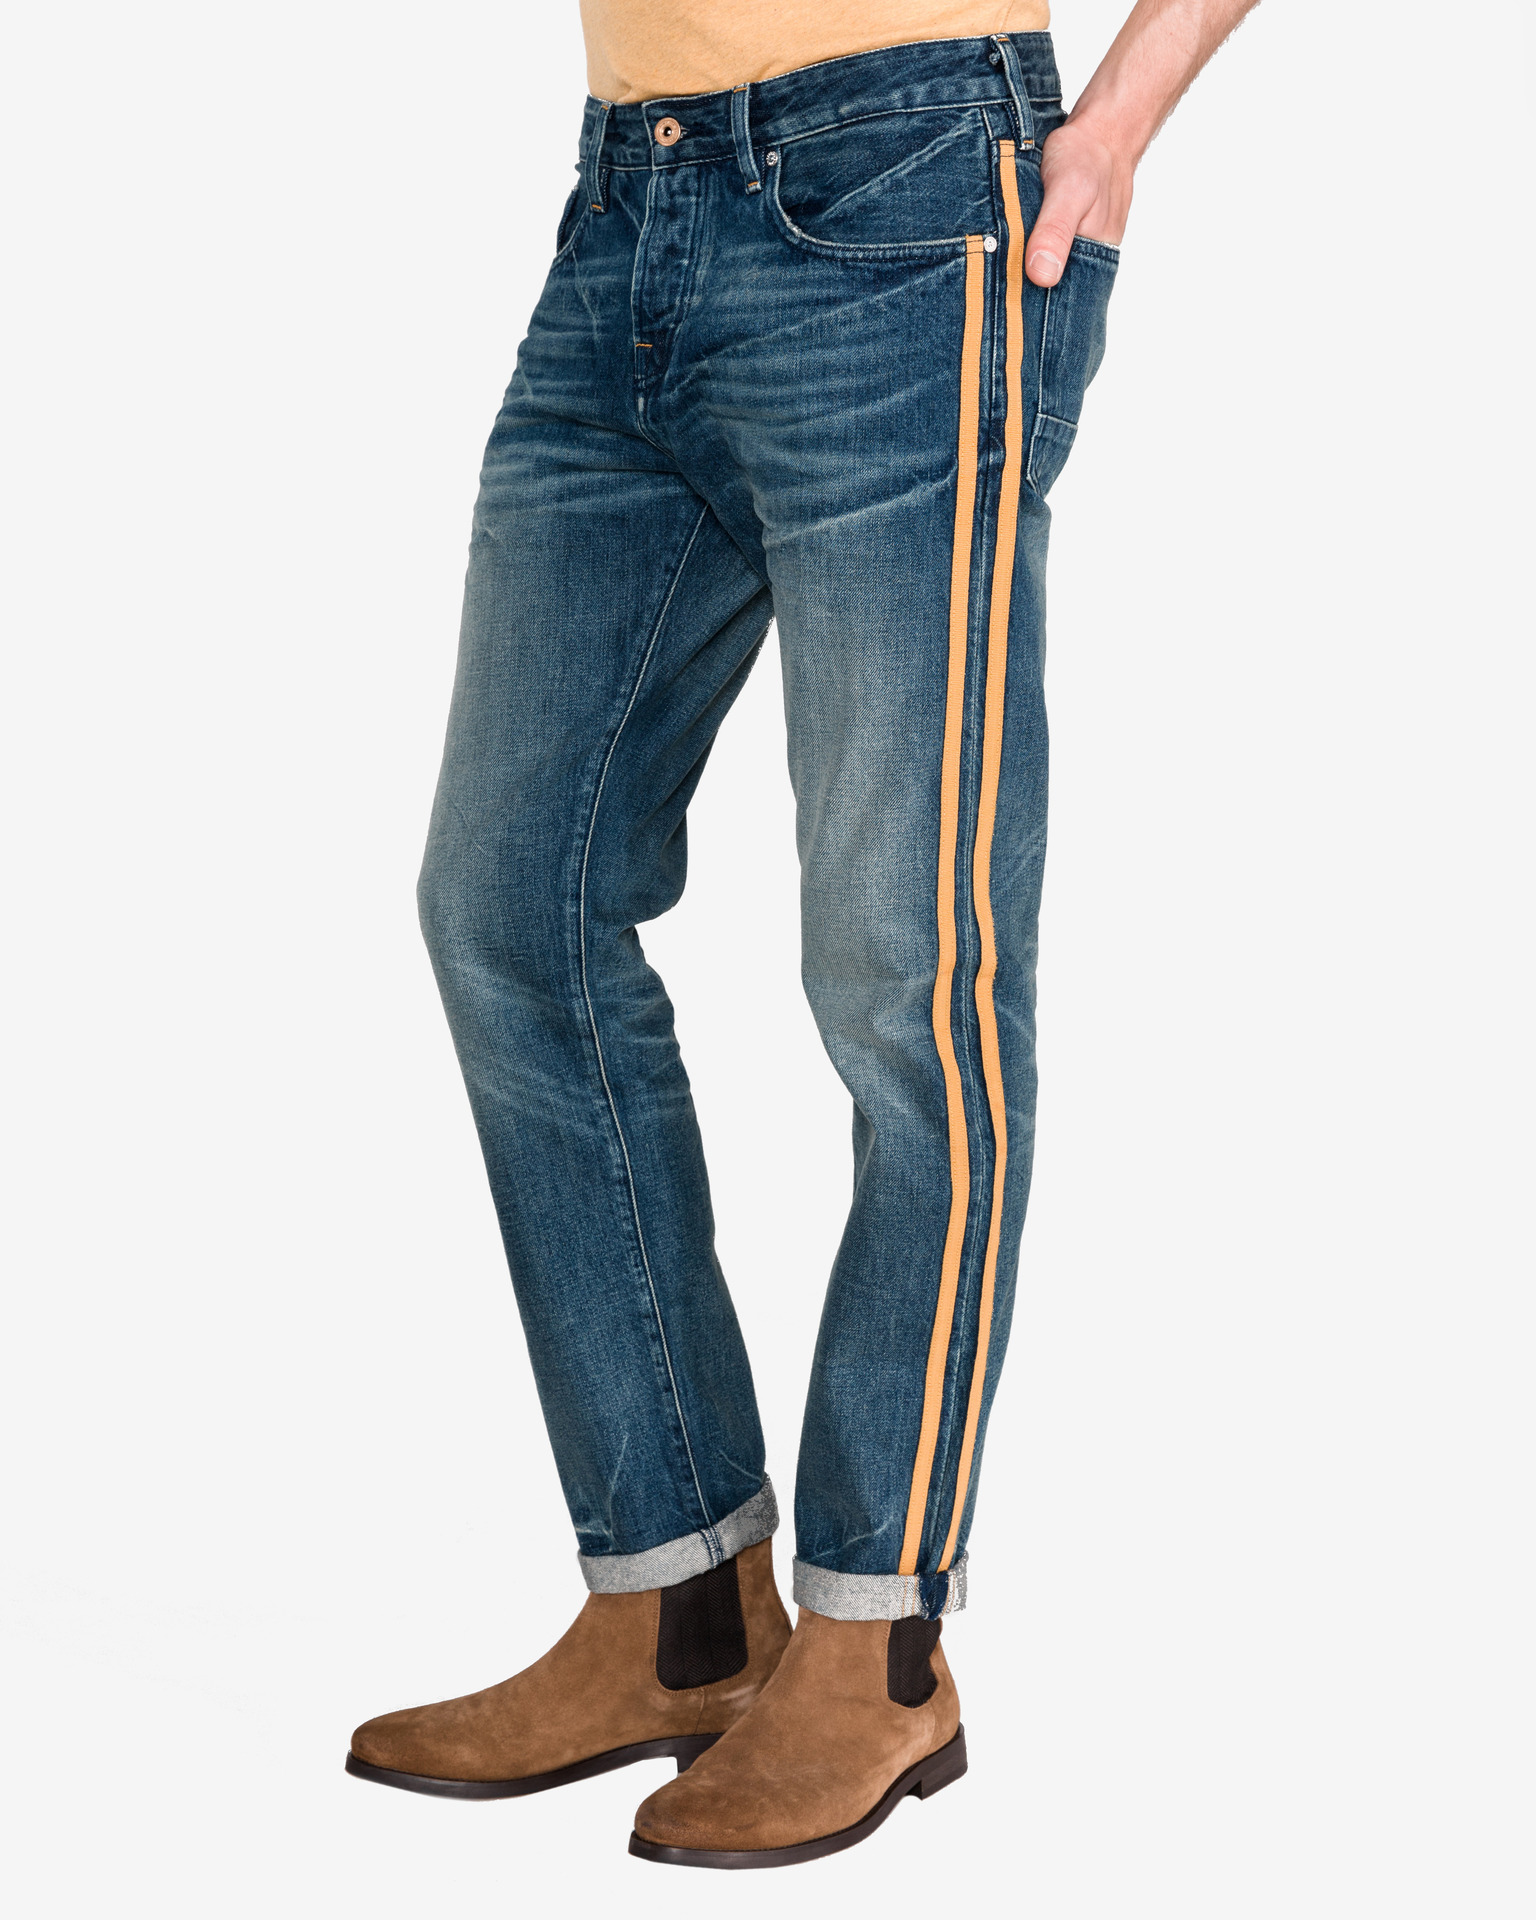 Vernon Jeans Scotch  Soda